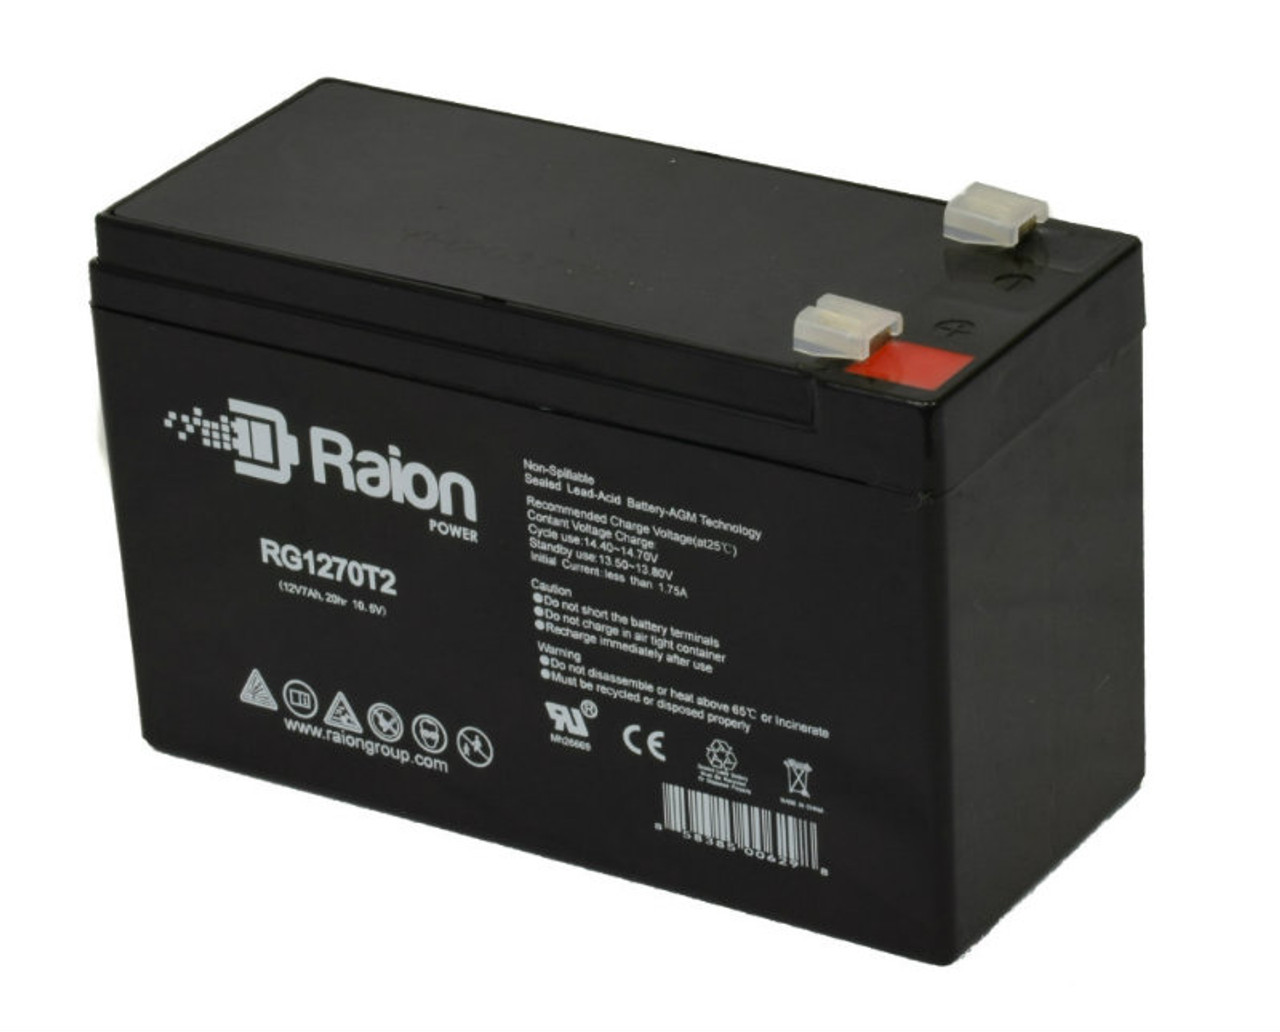 Raion Power RG1270T1 Replacement Battery for OUTDO OT7-12